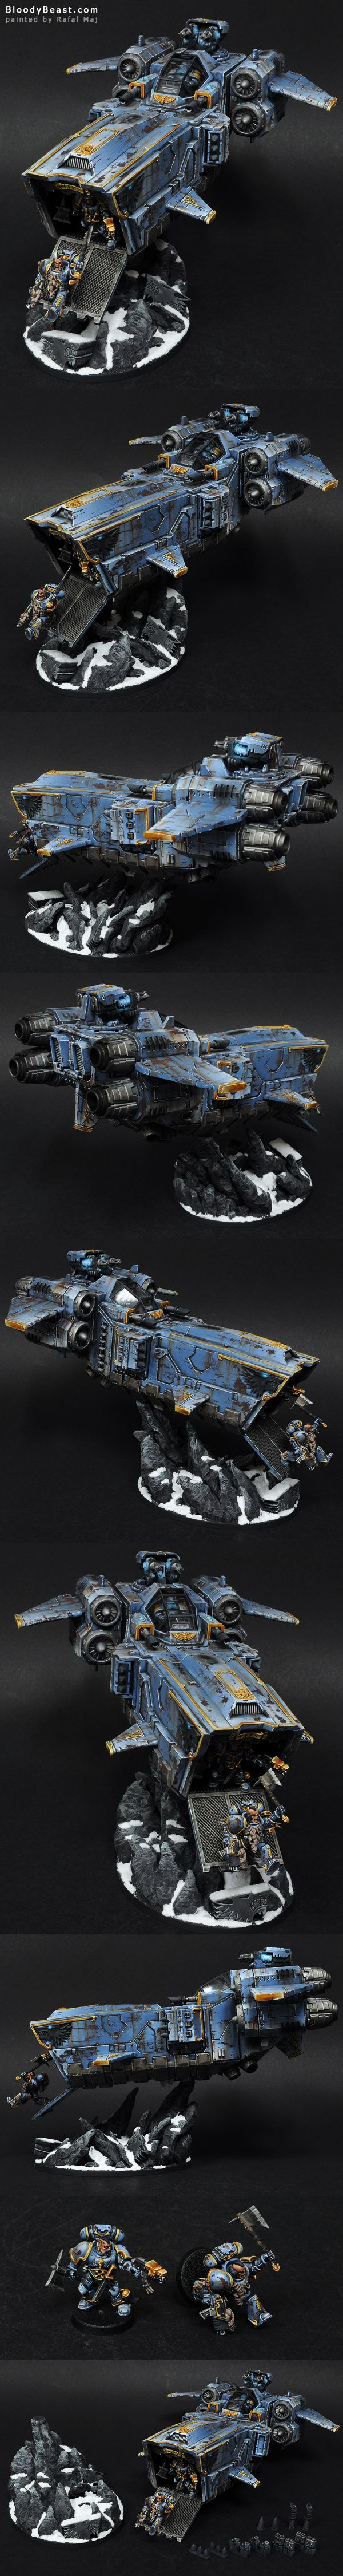 Space Wolves Stormwolf painted by Rafal Maj (BloodyBeast.com)